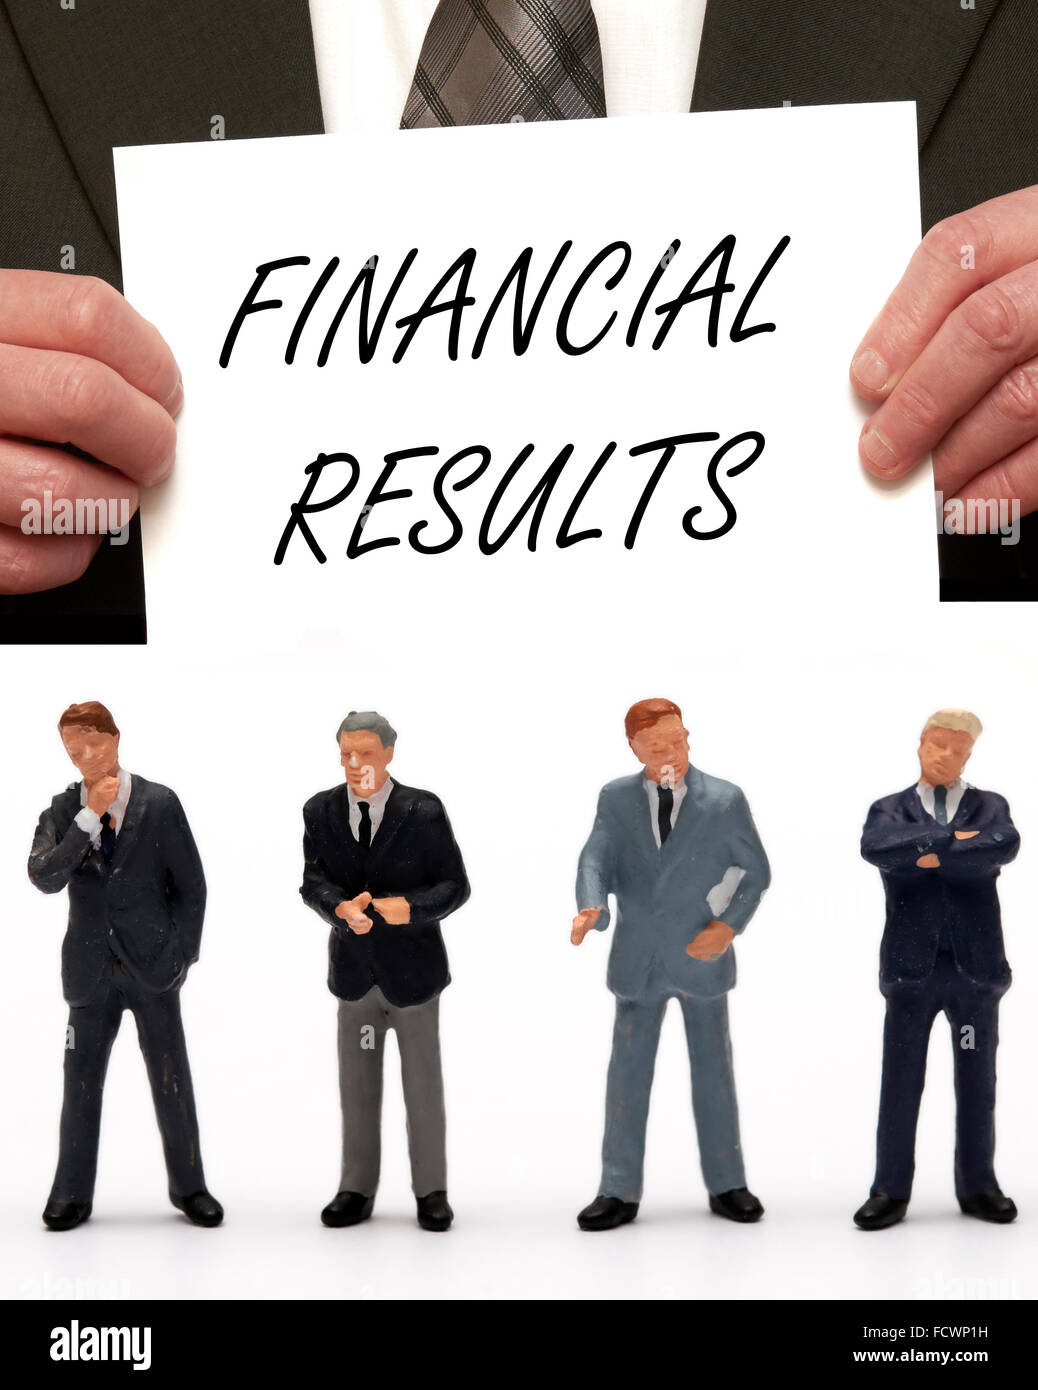 Miniature figurine Business men dressed in suits with the message Financial results on a card being held by a man - Stock Image